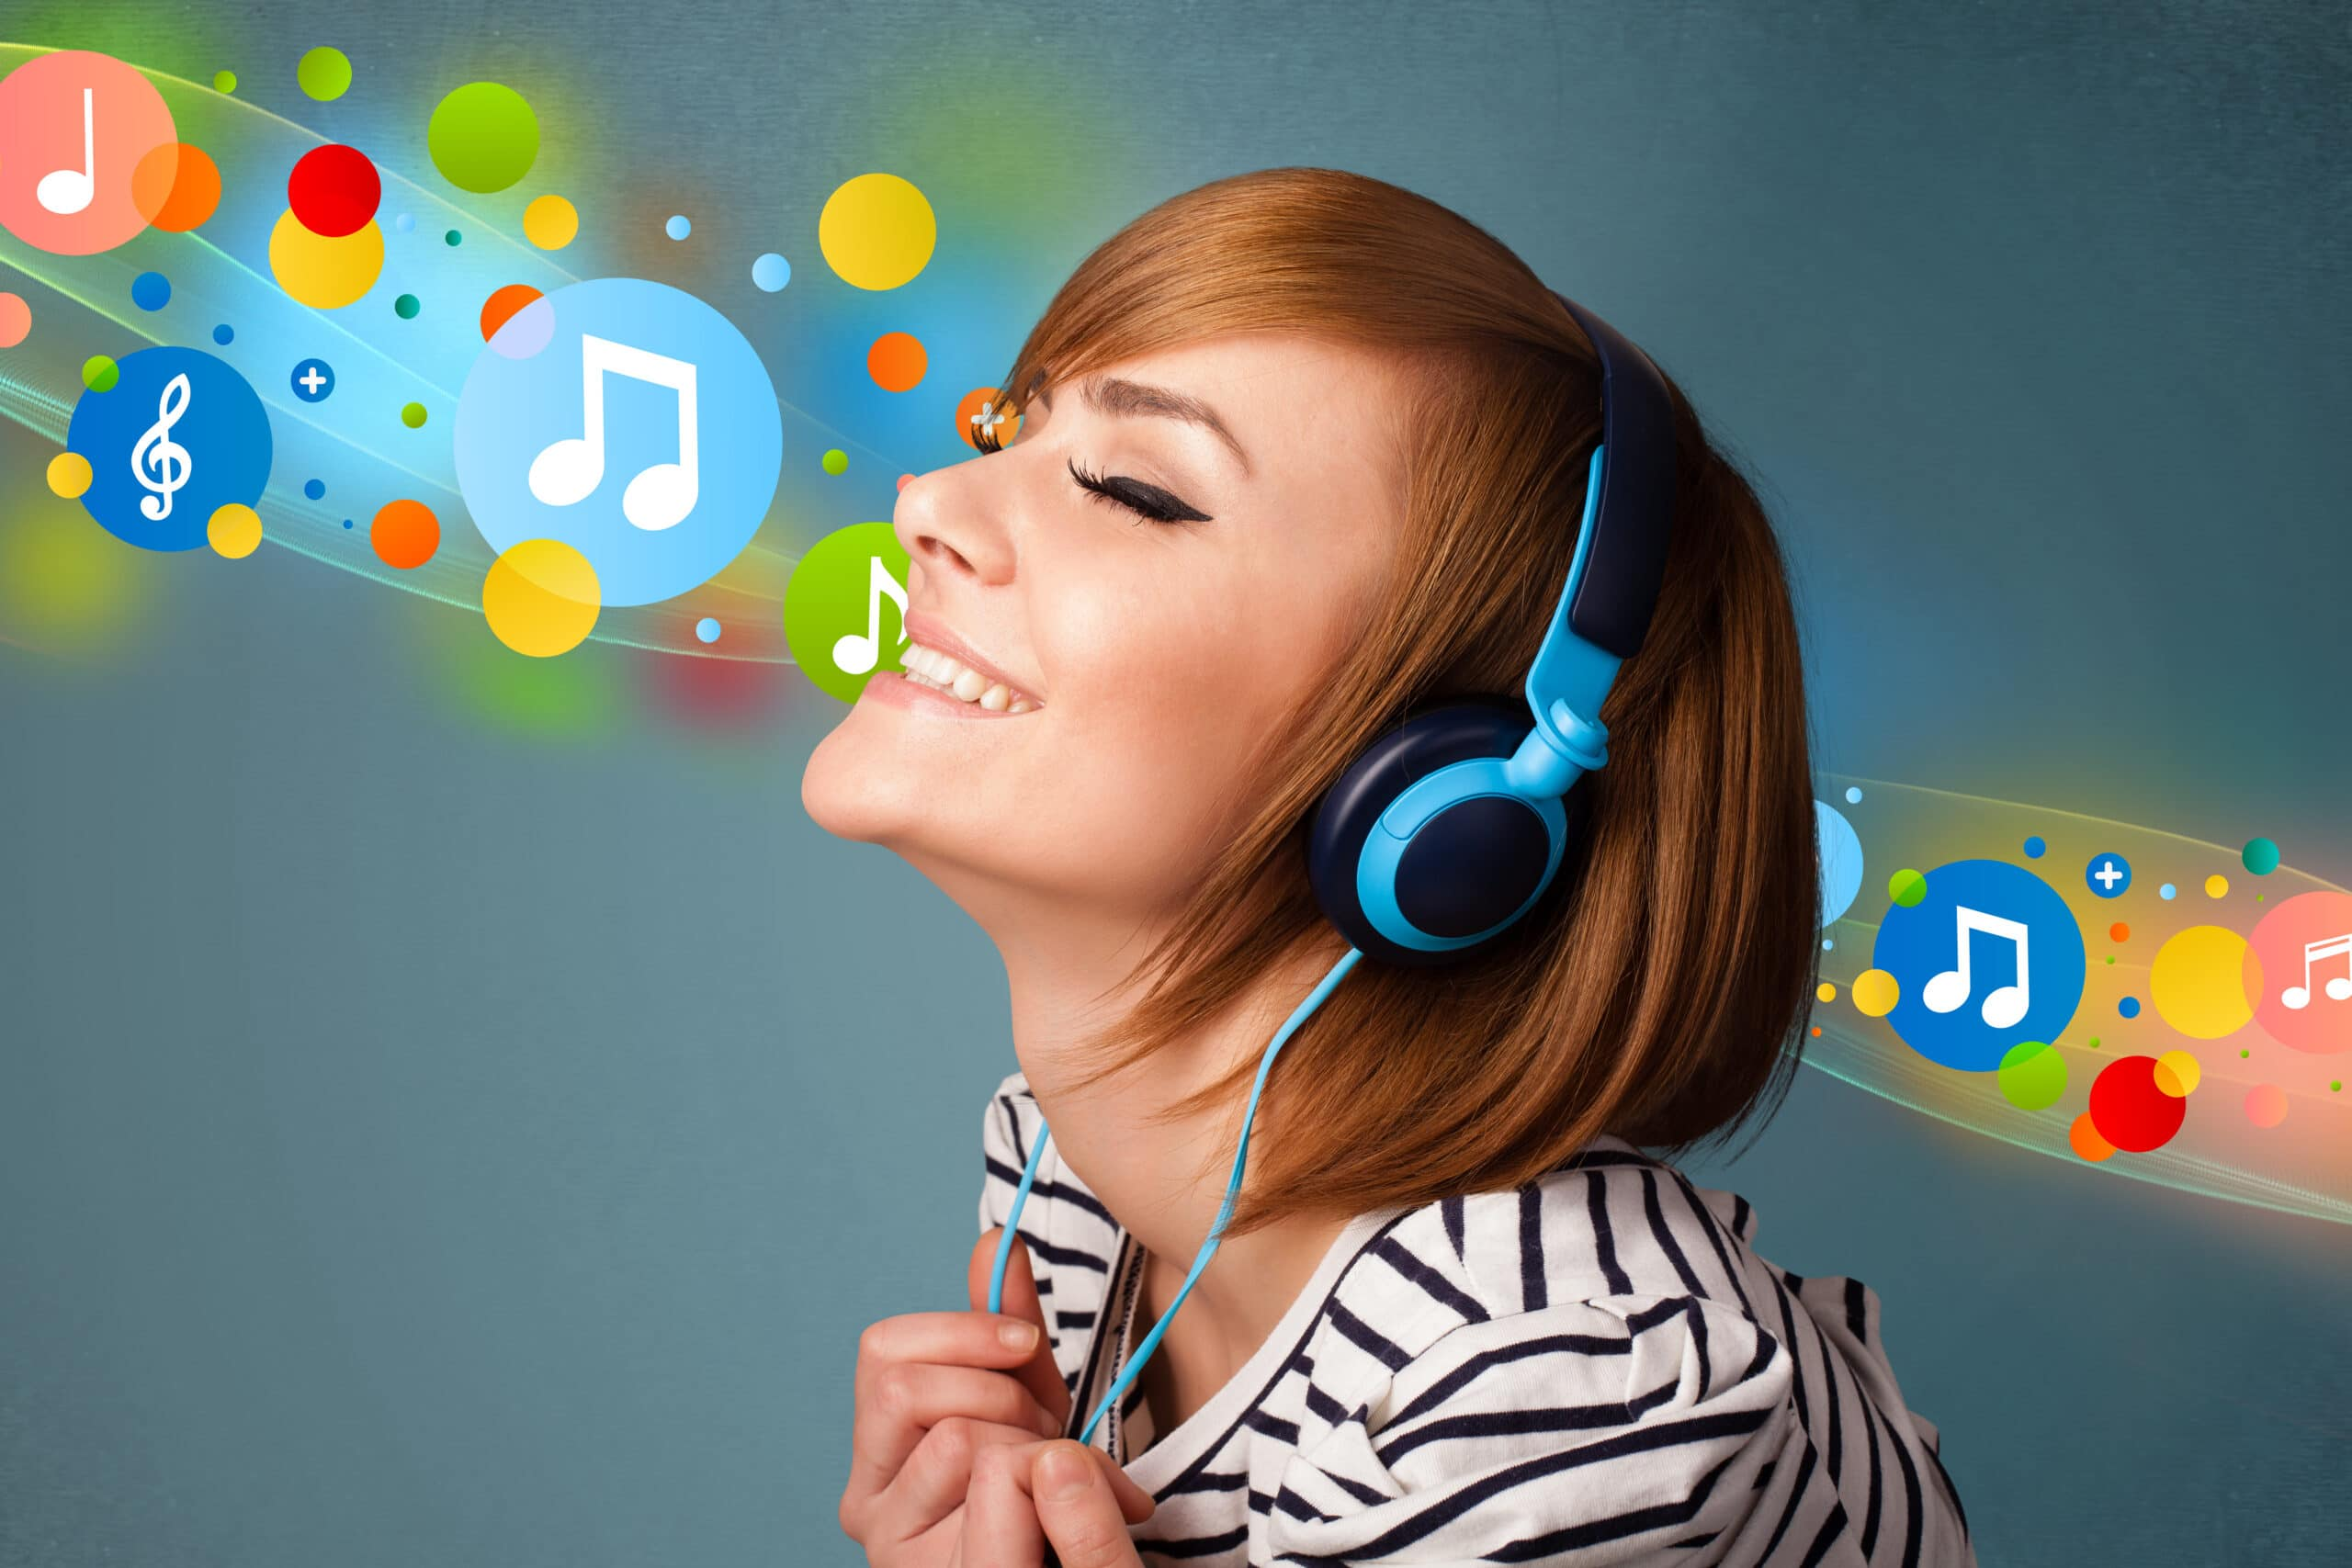 Songs can Reduce Pain in Kids after Surgery Songs can Reduce Pain in Kids after Surgery new pictures